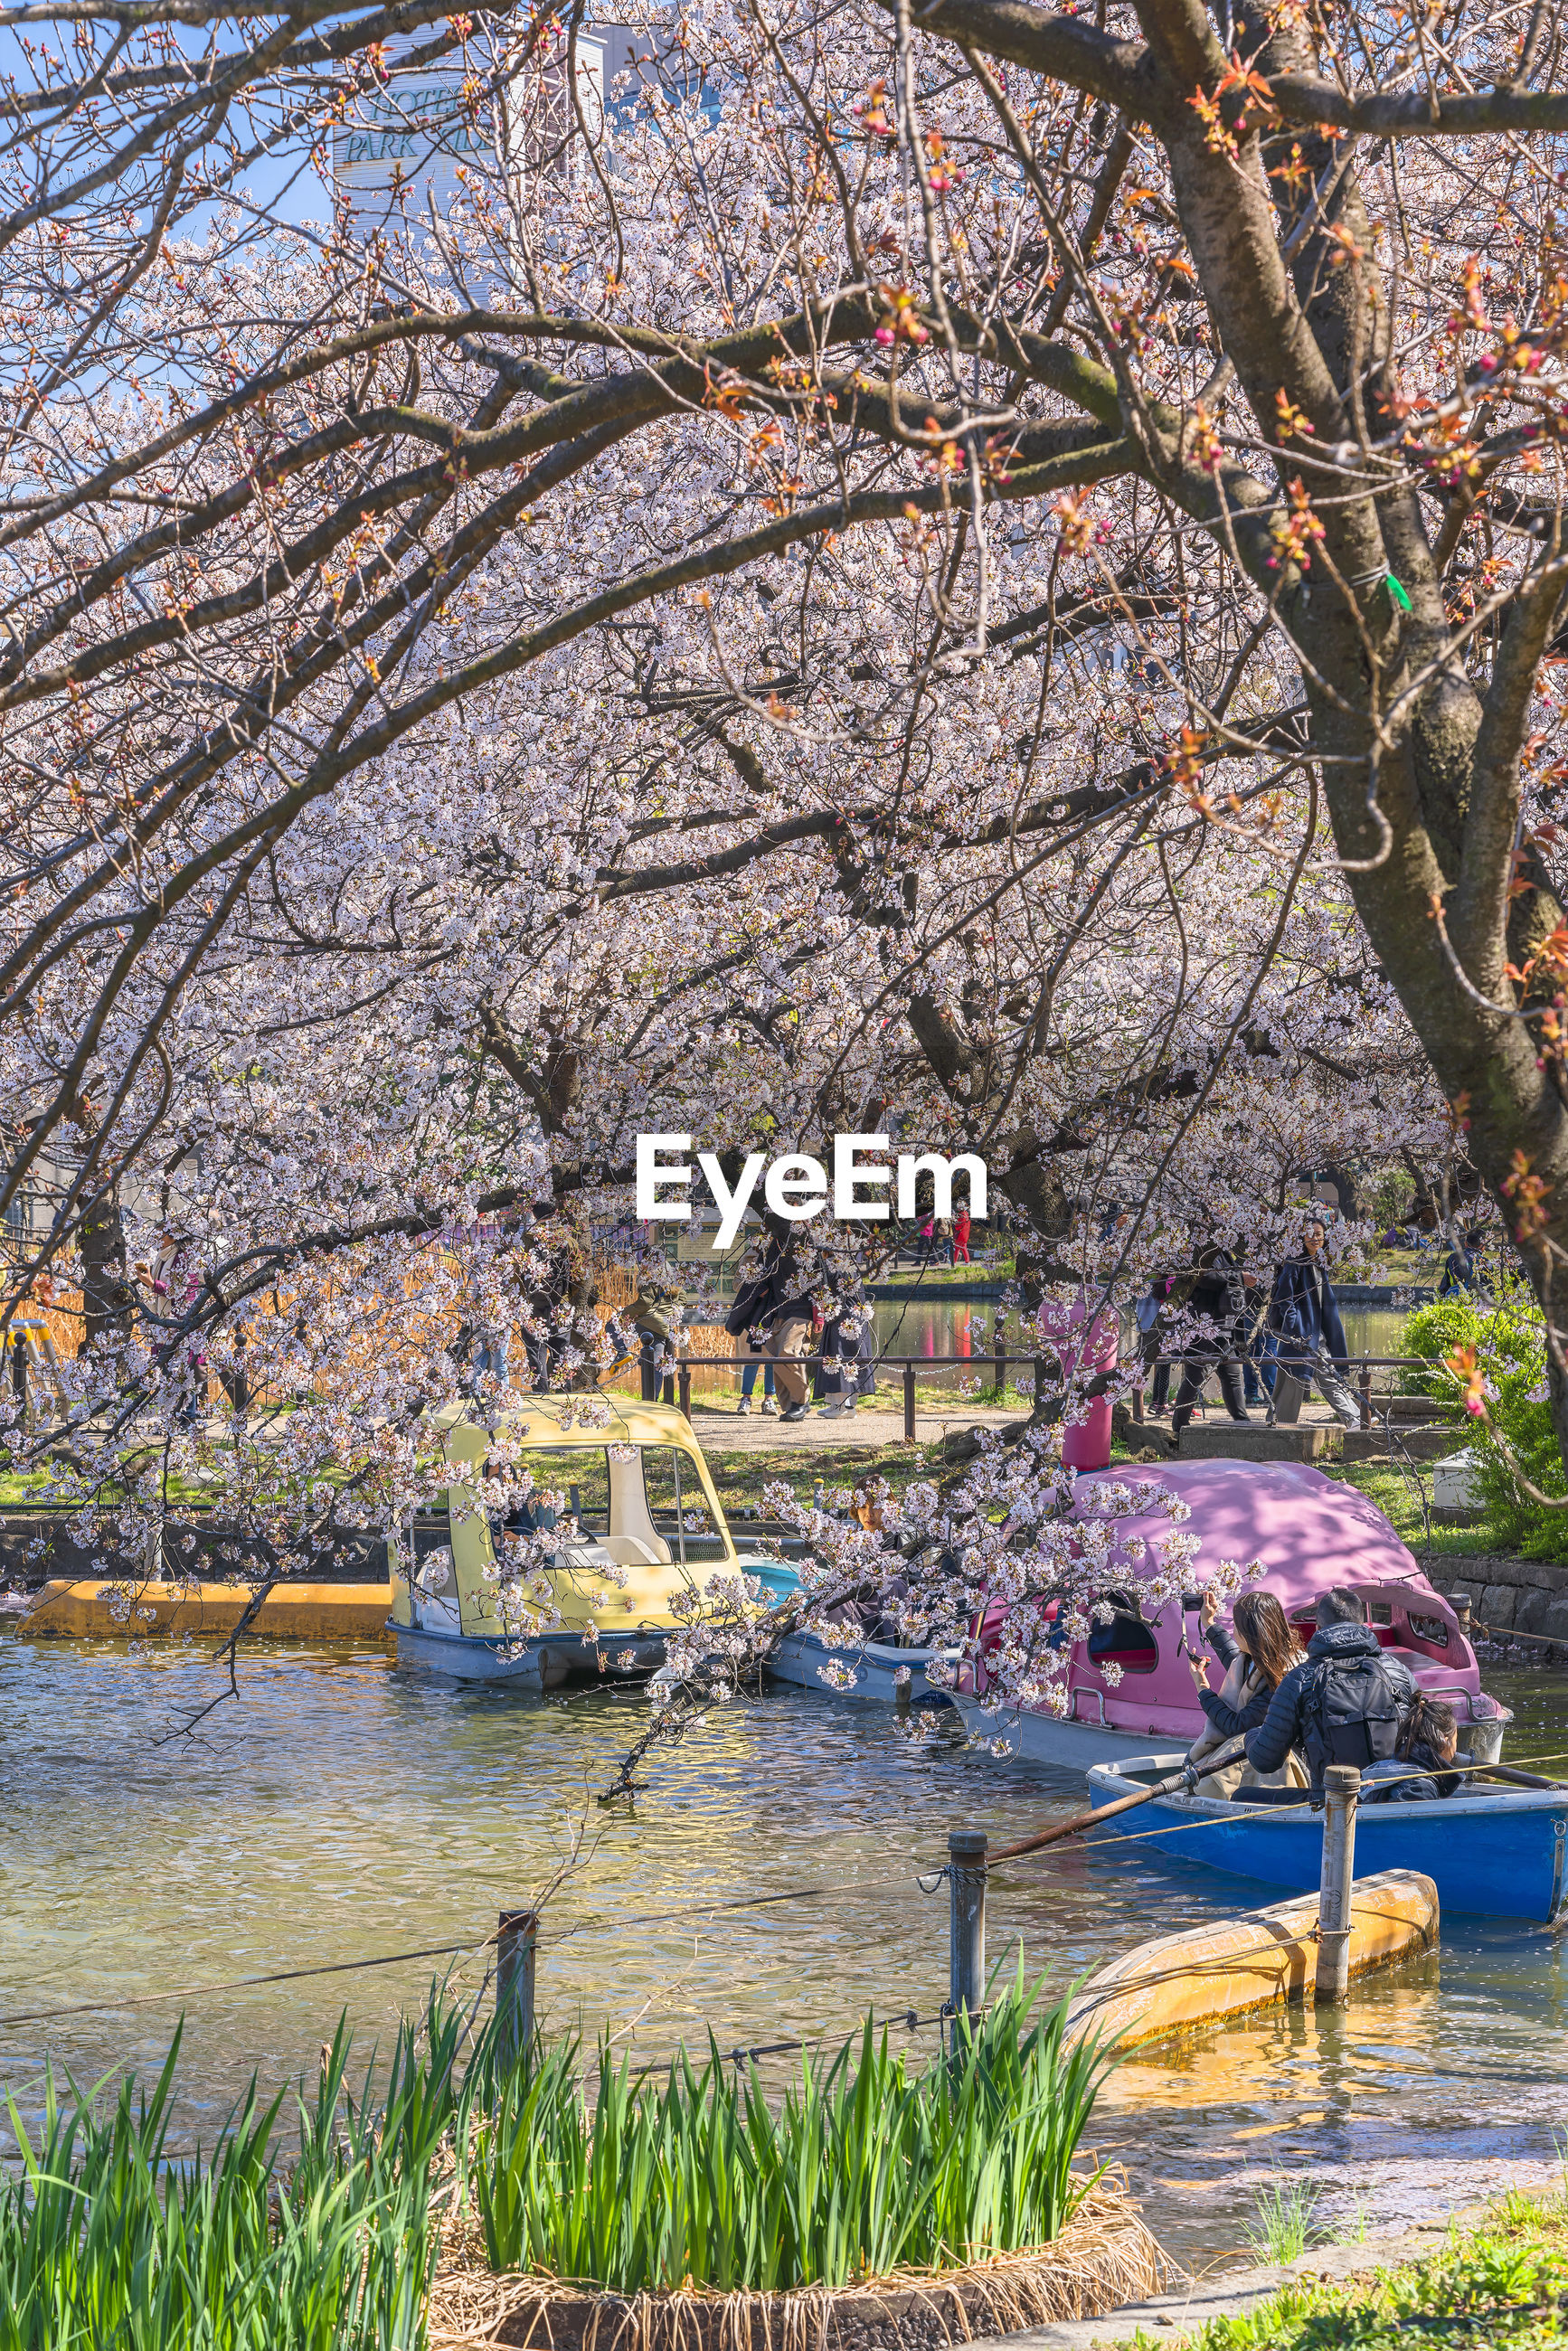 VIEW OF CHERRY BLOSSOM AT PARK